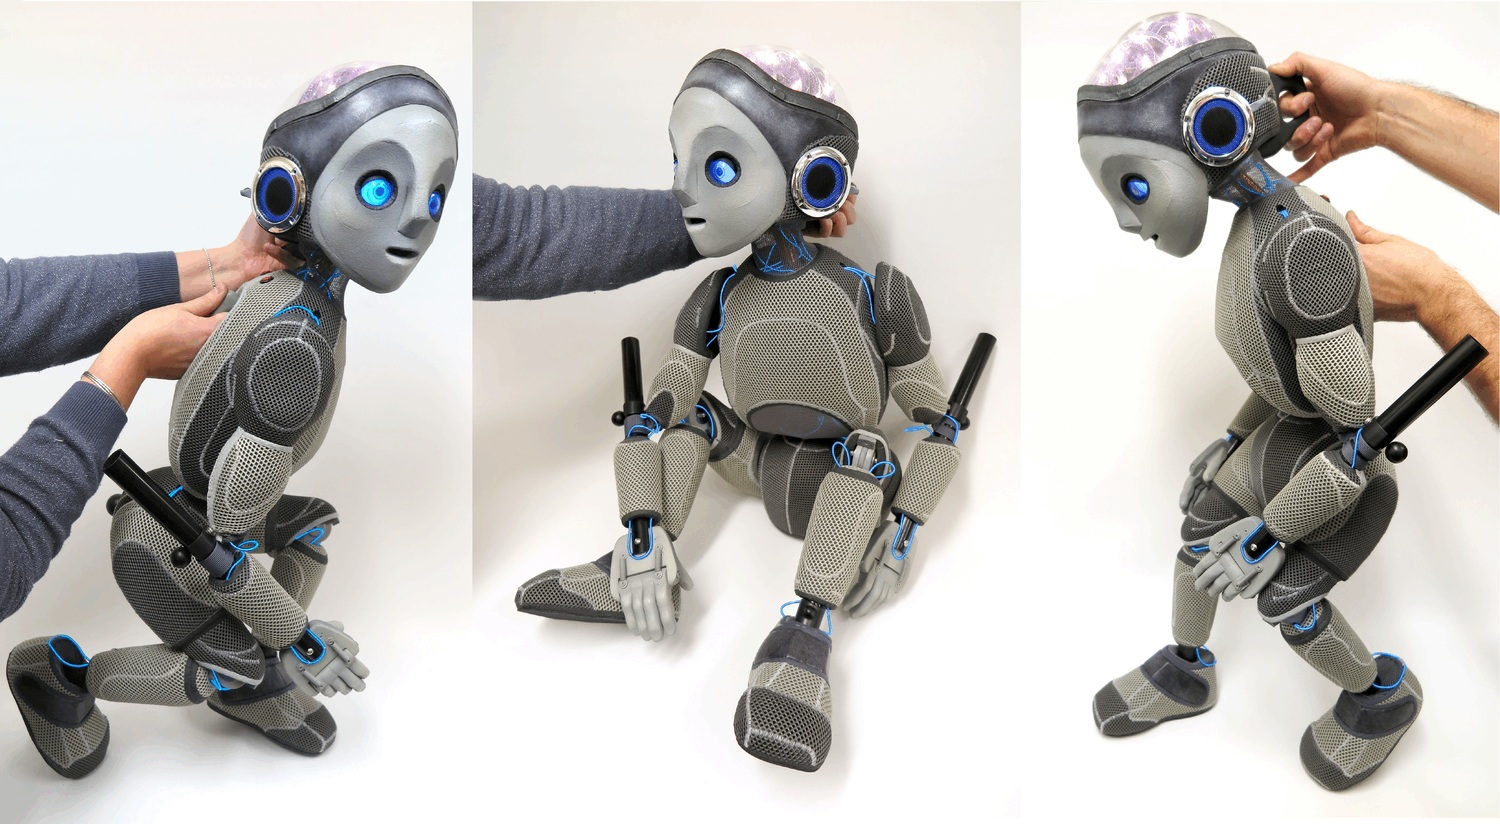 3 images of a robot puppet in different positions